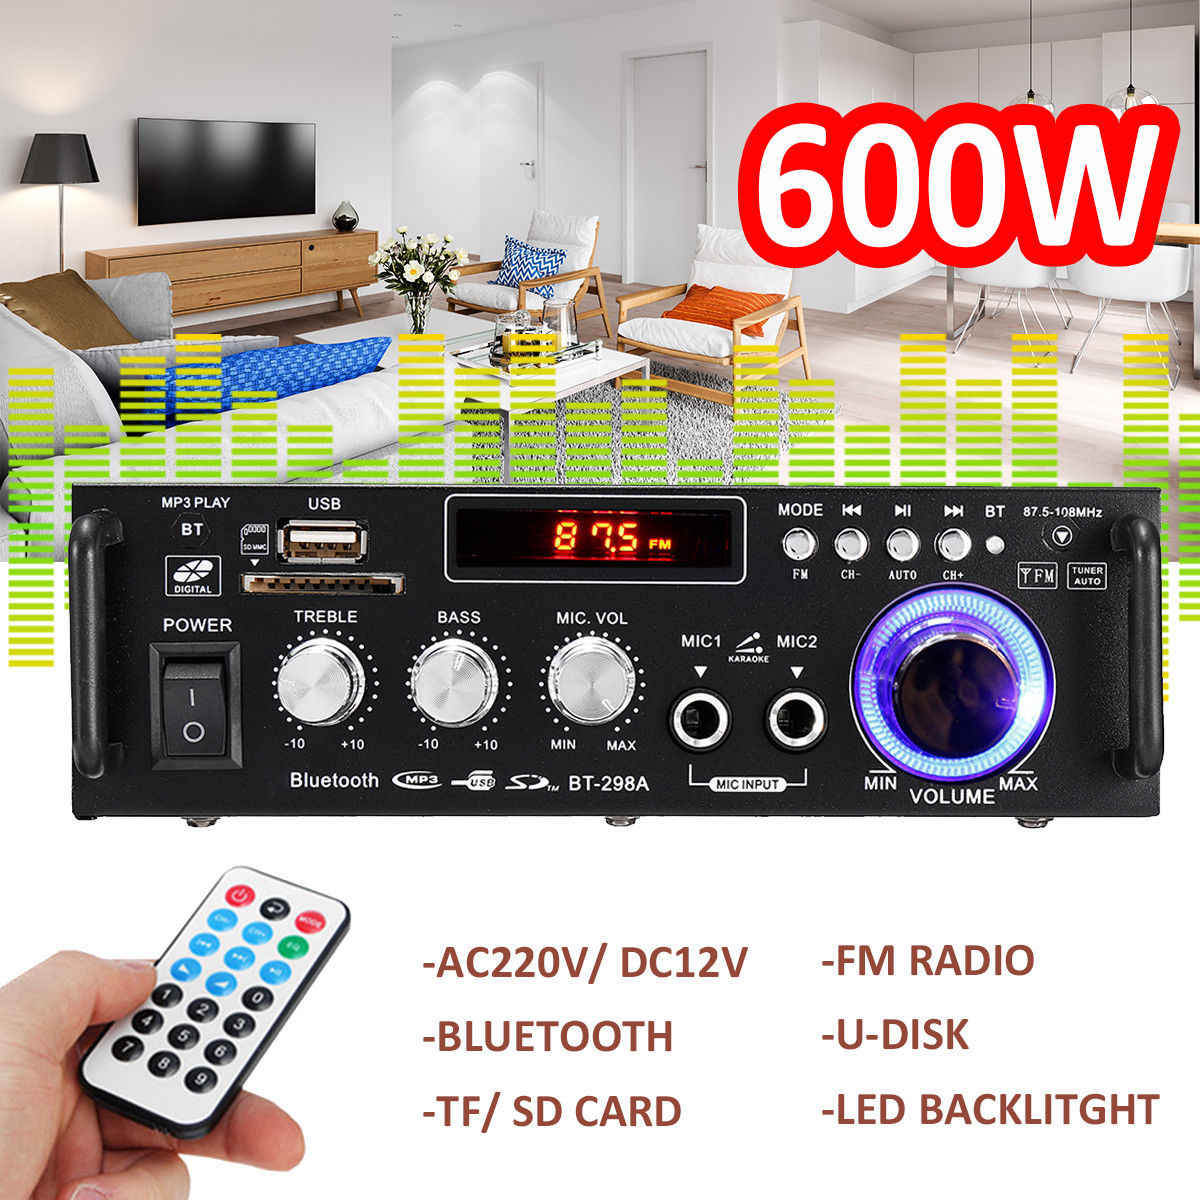 600w Home Amplifiers Audio bluetooth Amplifier Subwoofer Amplifier Home Theater Sound System Mini Amplifier Professional